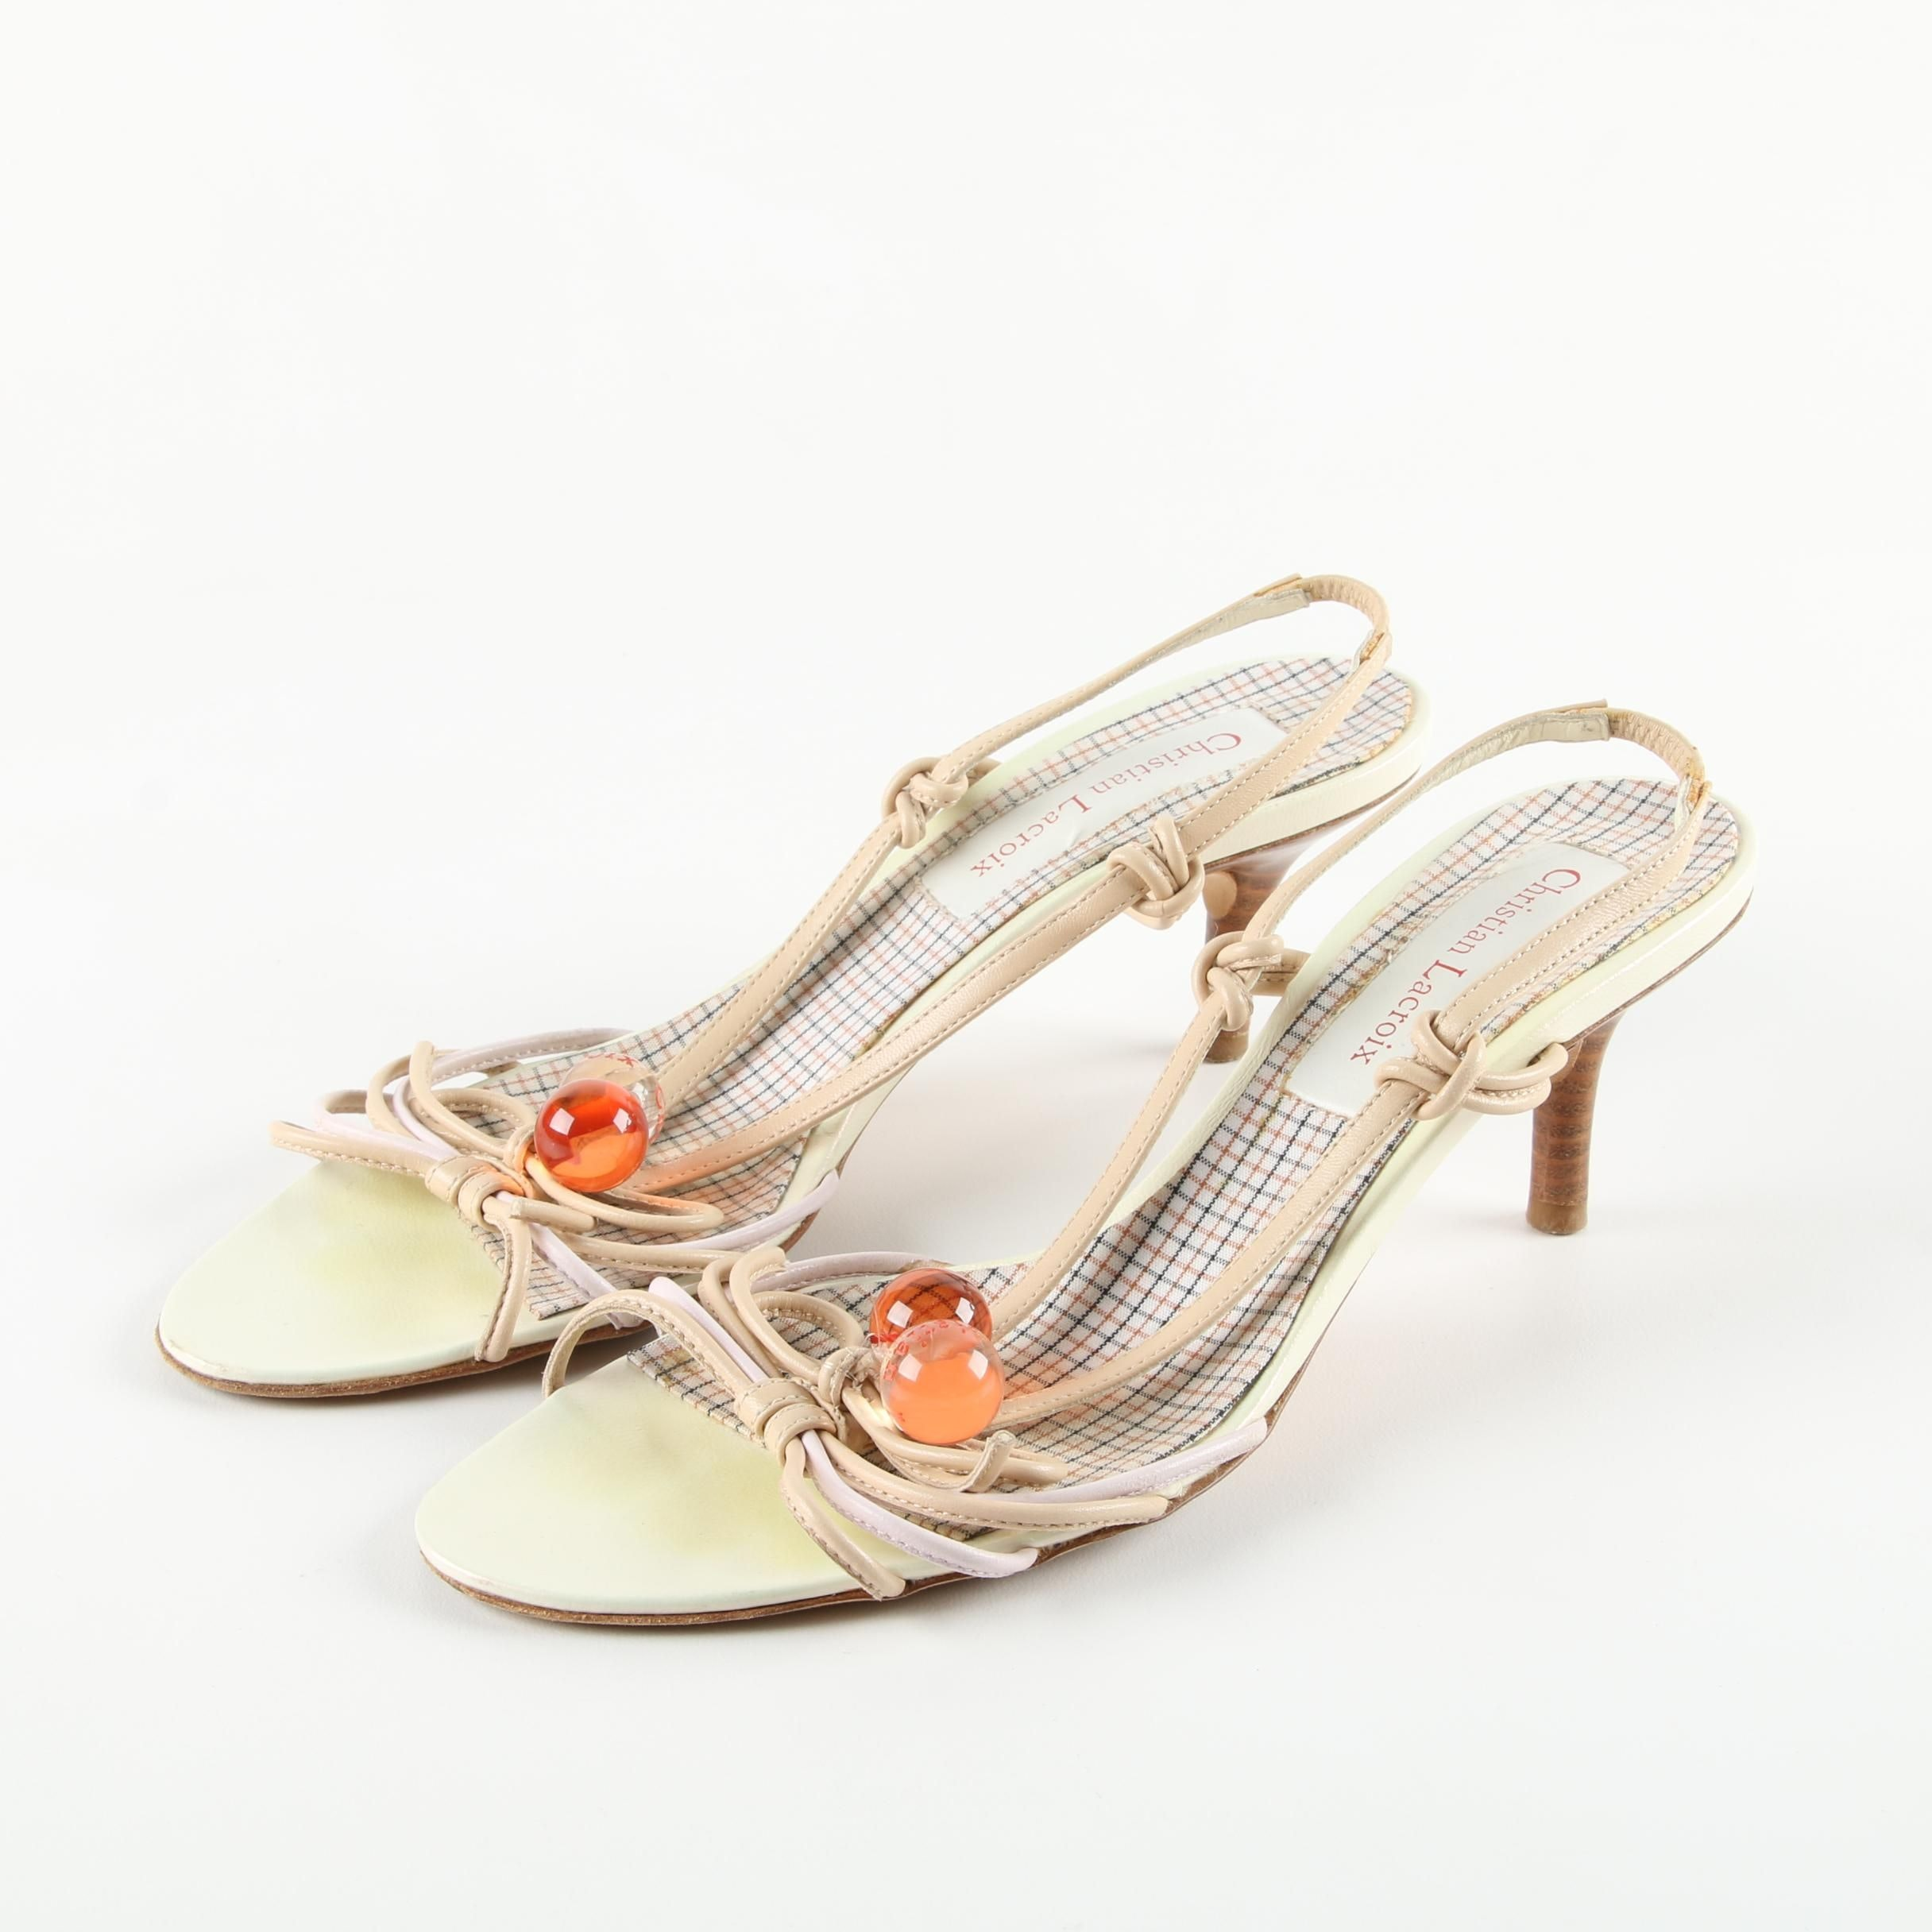 Christian Lacroix Cream Leather Sandals with Acrylic Accents